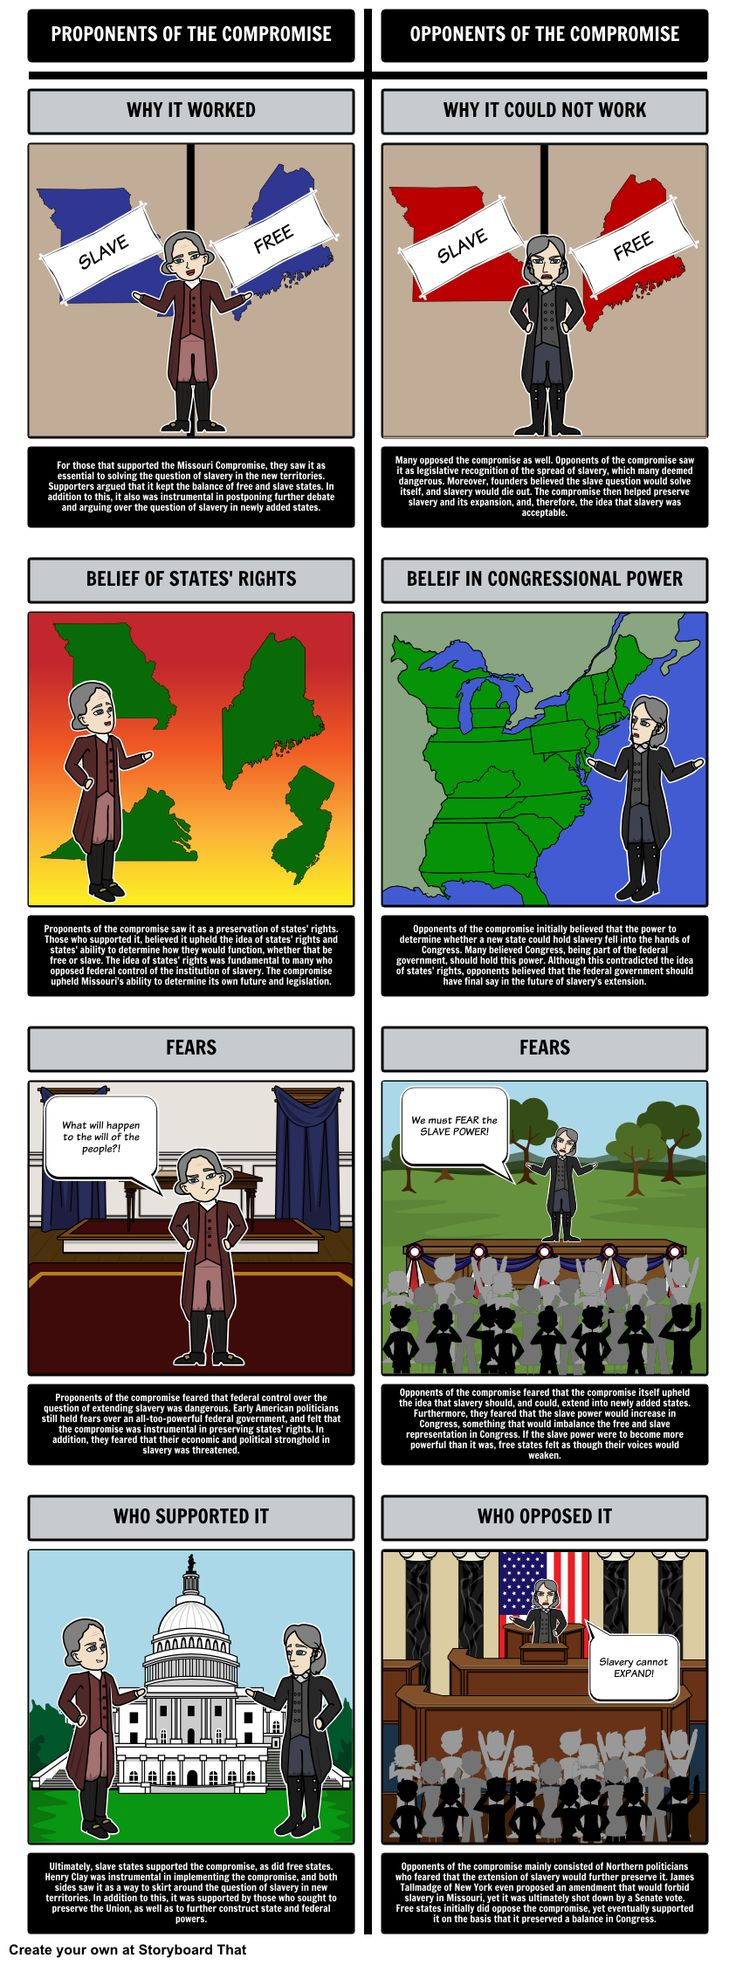 best ideas about missouri compromise history using a t chart storyboard students will compare and contrast the viewpoints from both the proponents of the missouri compromise as well as the opponents